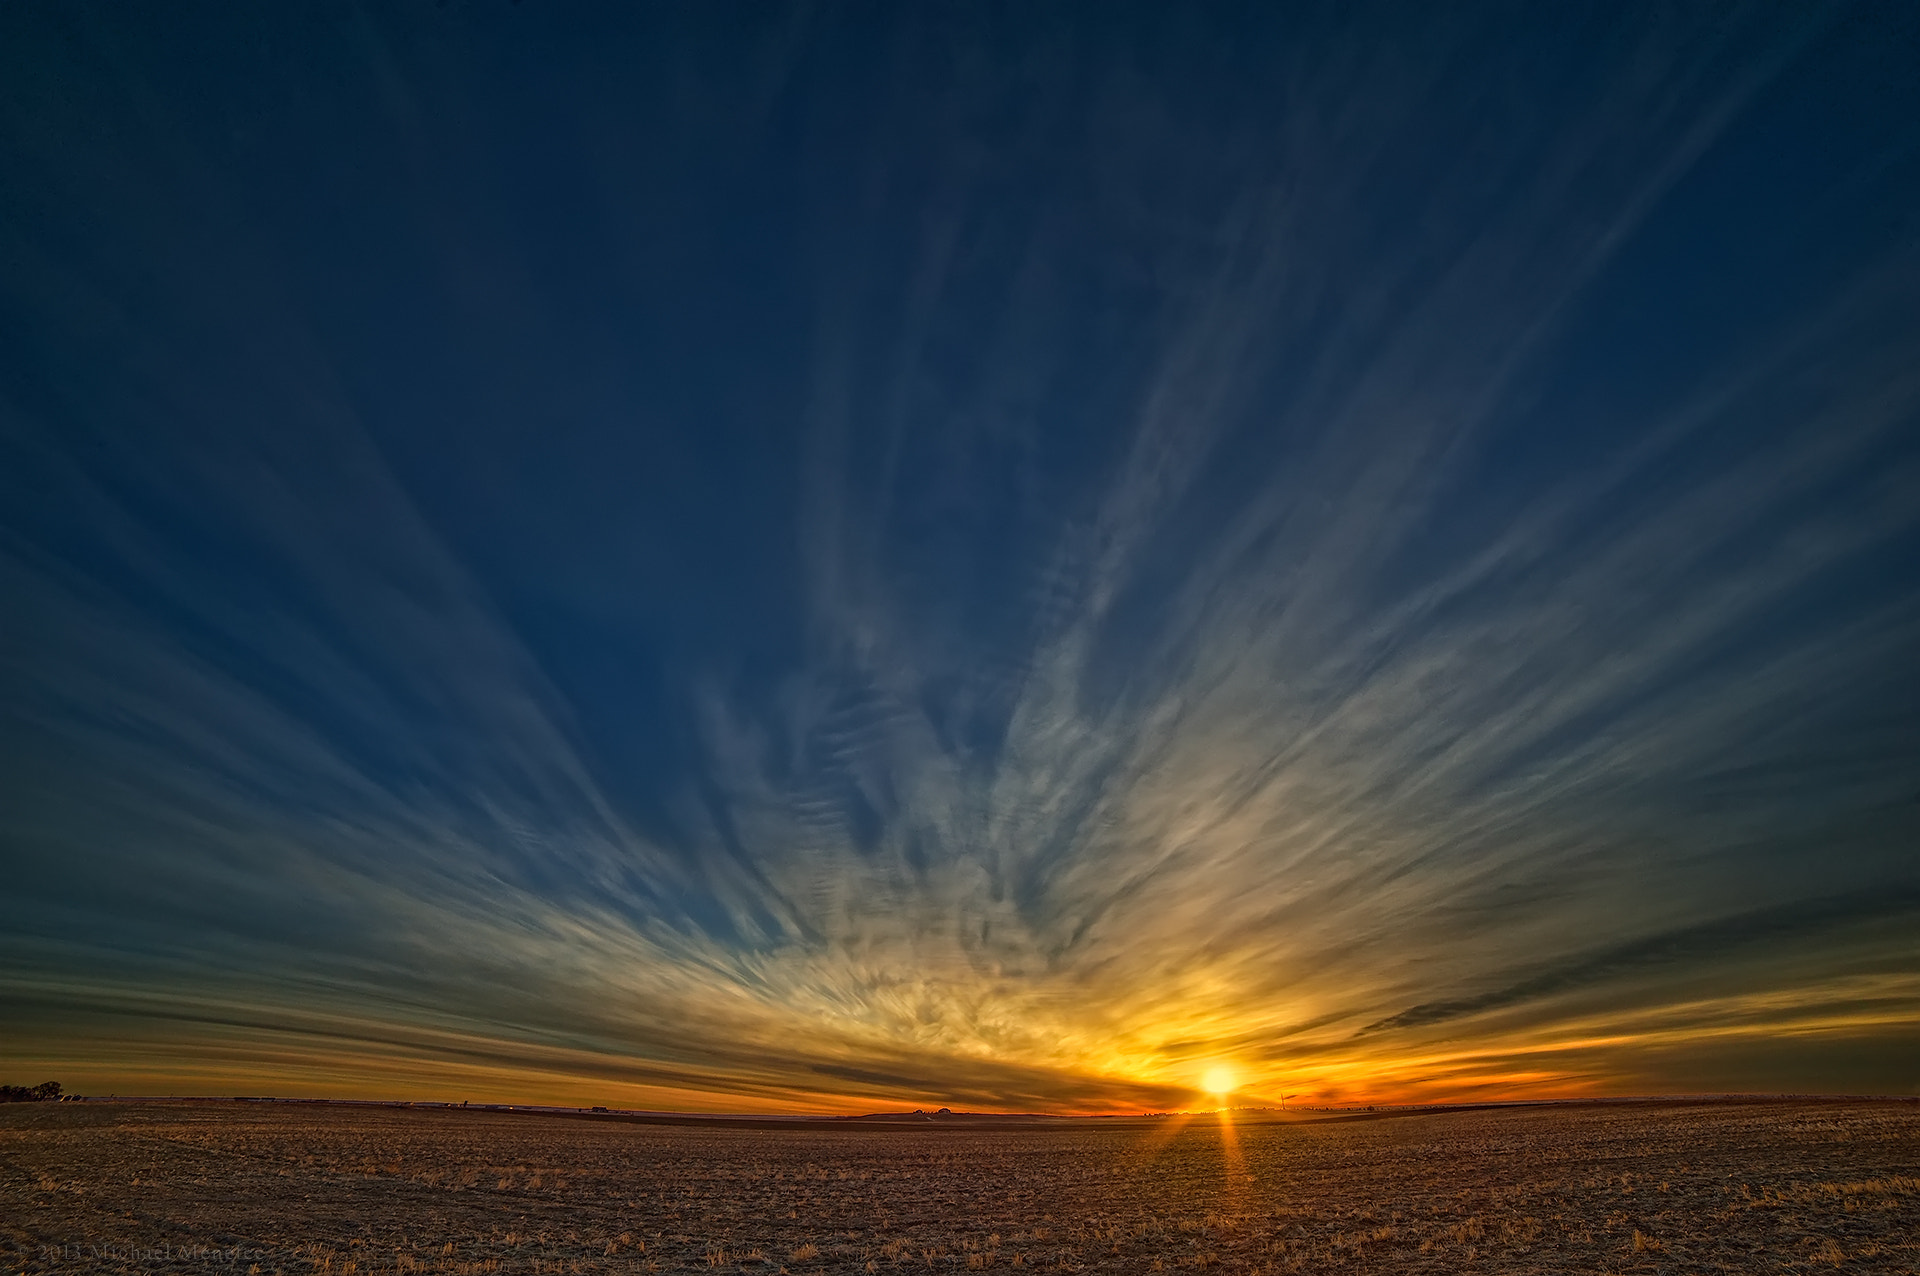 Photograph East of Nunn-Rise by Michael Menefee on 500px